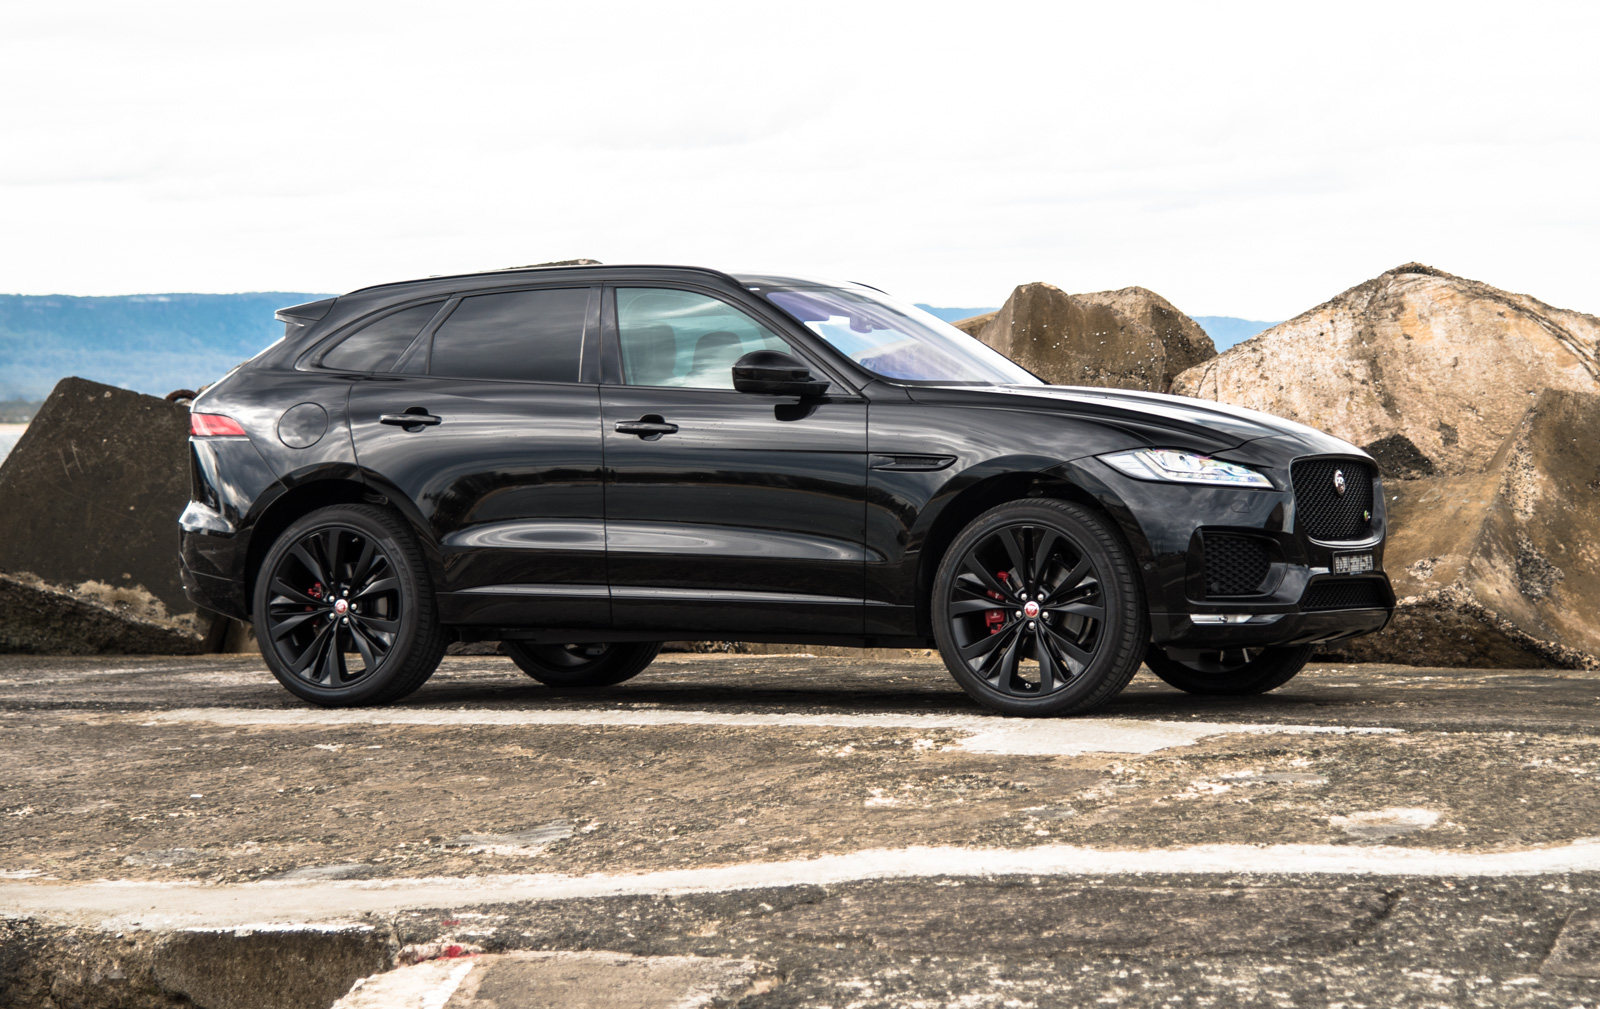 2016 jaguar f pace s 35t review first impressions pov performancedrive. Black Bedroom Furniture Sets. Home Design Ideas